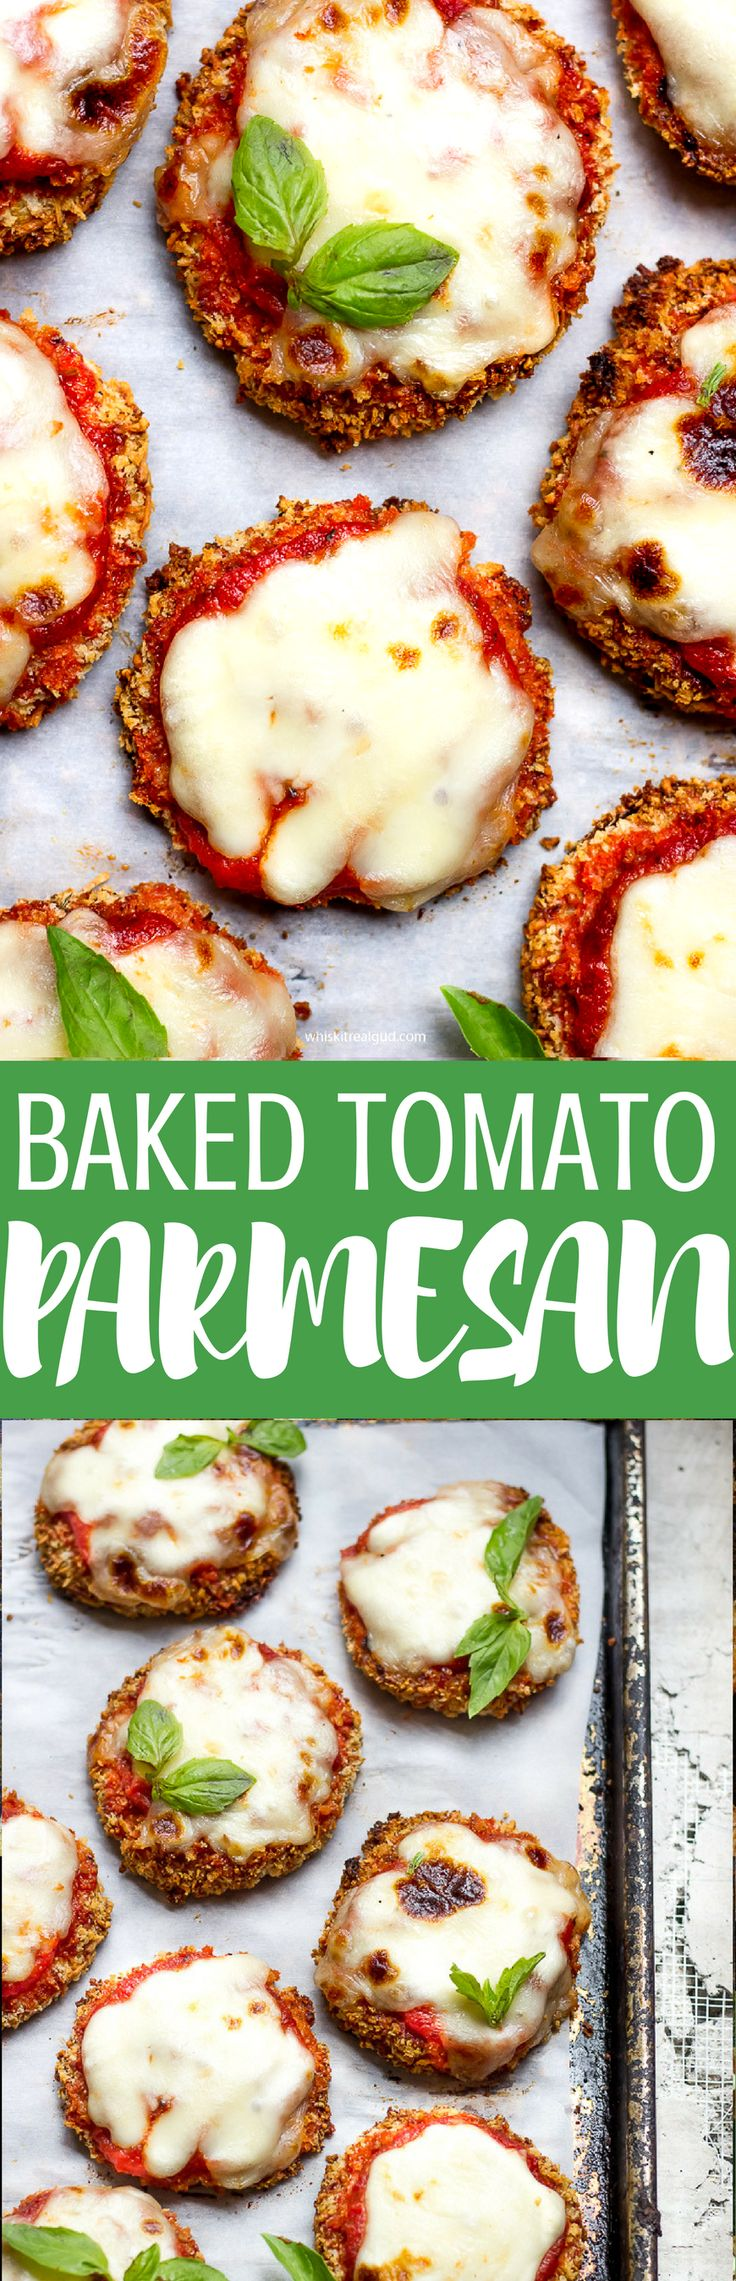 Baked tomato Parmesan. Crunchy Parmesan panko bread crumbs, melted Parmesan cheese and tomato sauce. What can be better than that?